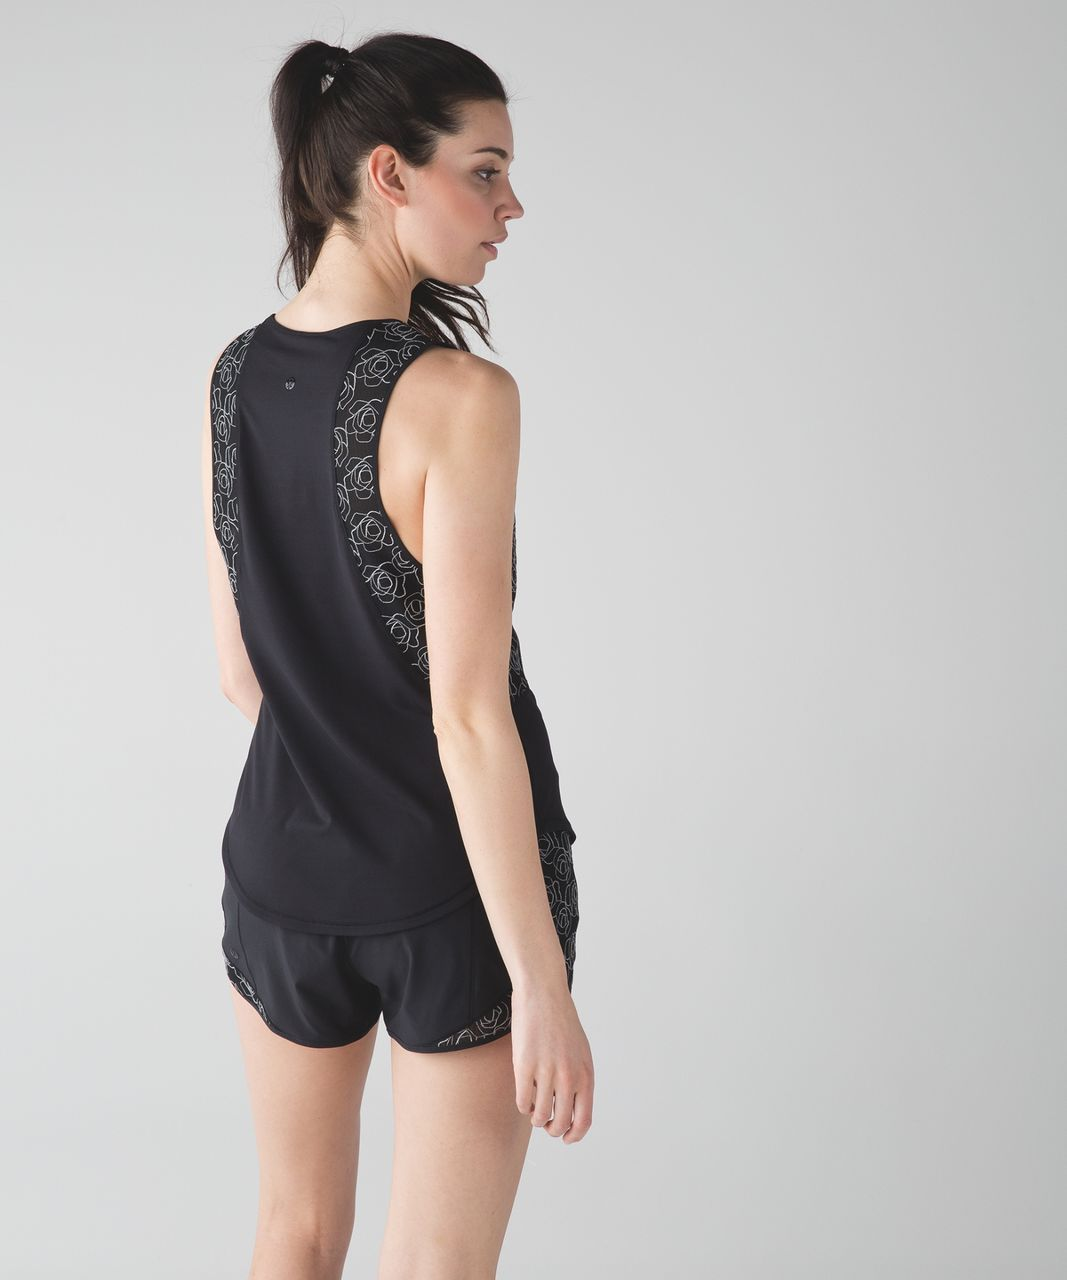 Lululemon Lucent Tank - Black